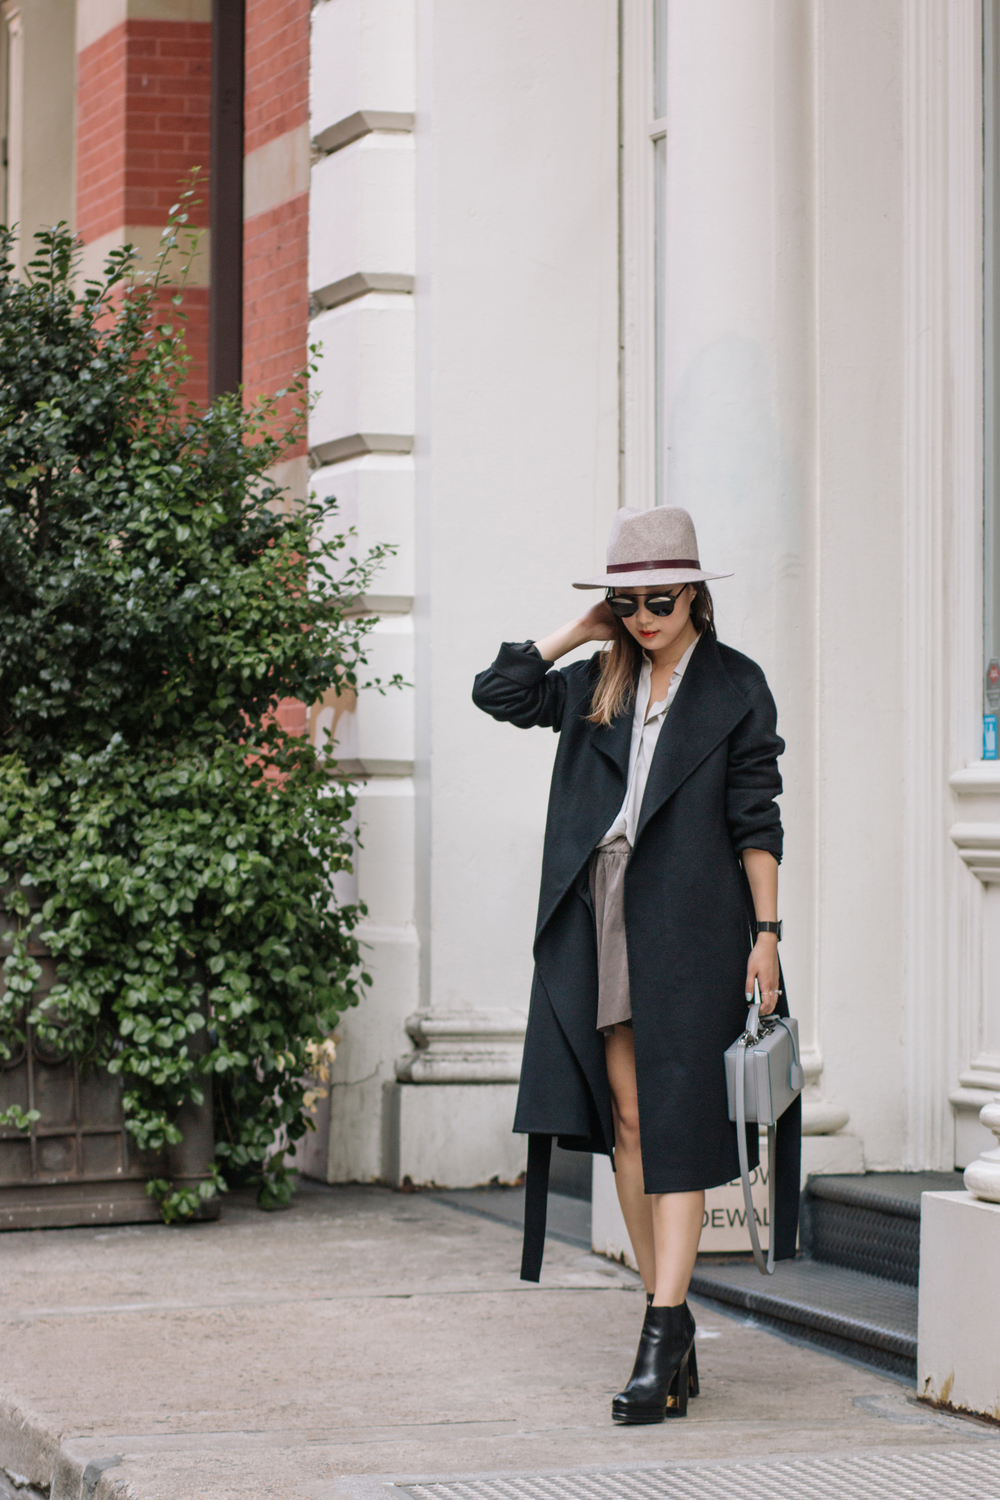 Kuho  Coat,  Everlane Shirt ,  Aritzia Skirt , Chanel Shoes,  Janessa Leone Hat ,  Mark Cross Bag ,  Dior Sunglasses ,  Larsson & Jennings Watch